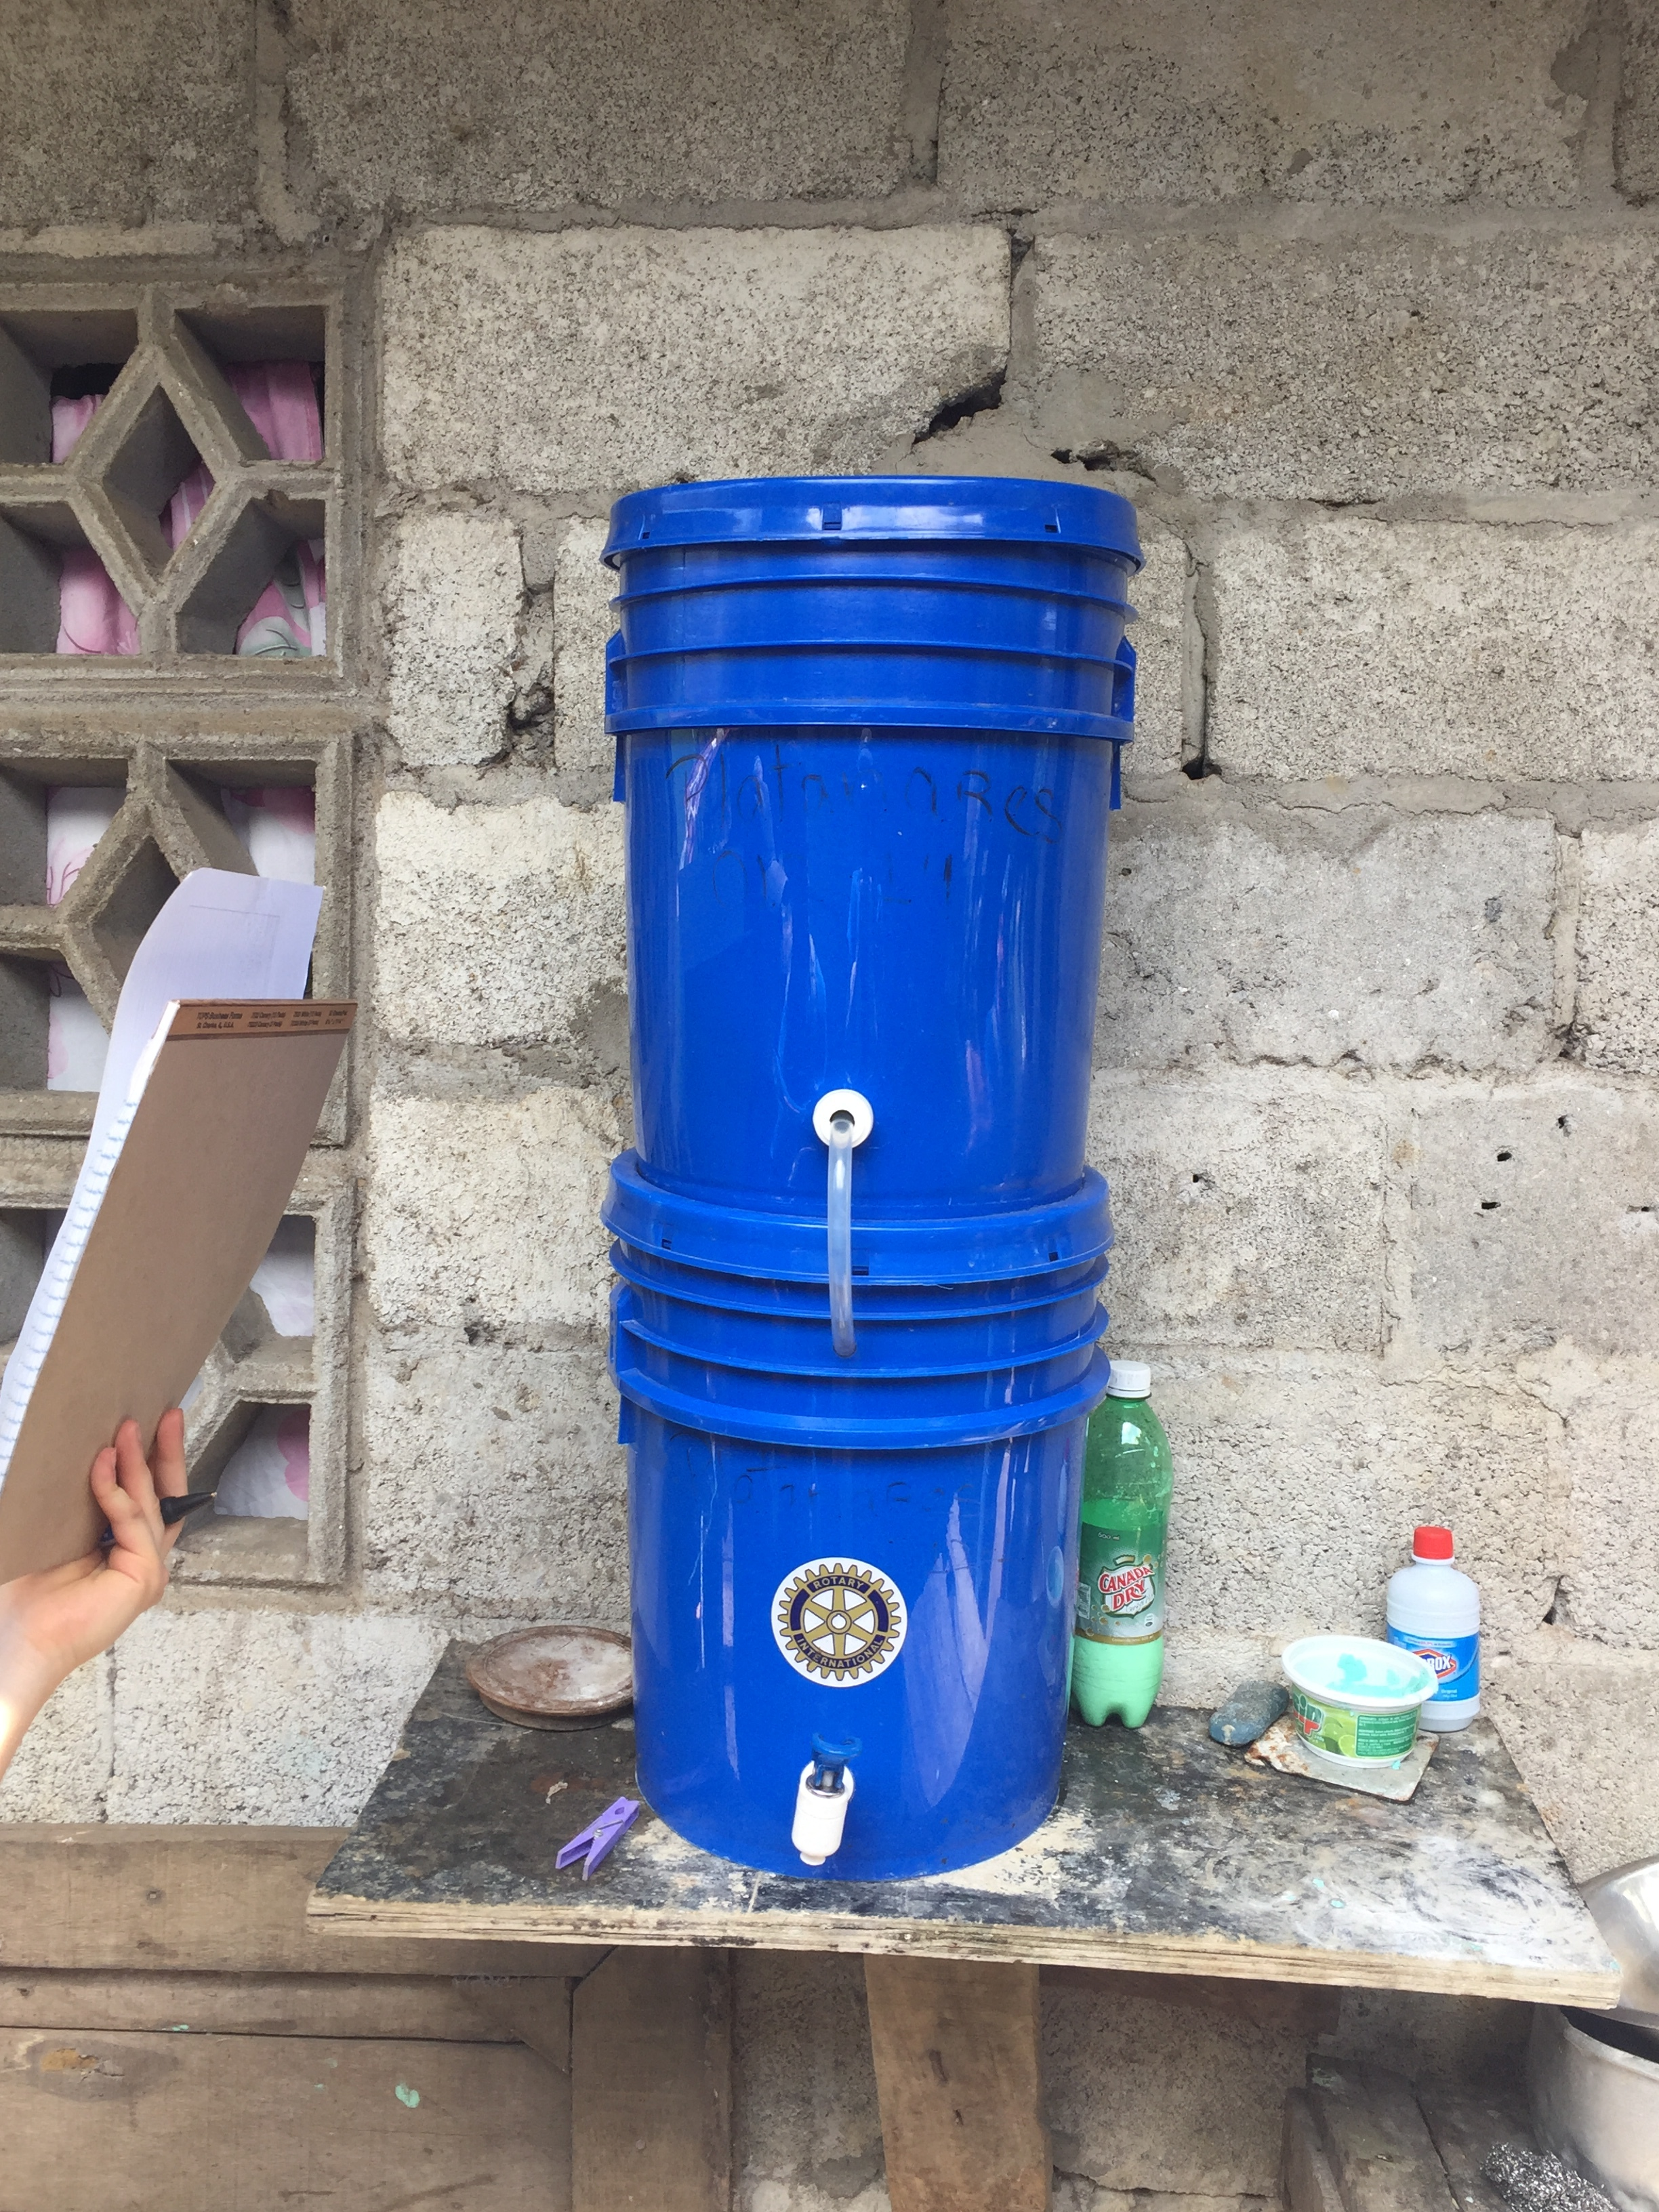 One example of a house visit to check and make sure the family is still using the filter and fix any problems that may have arose. This home scored high on the bucket cleanliness inspection! We were very happy to hear they were using the water filter and often. However, our civil engineering students recommended adding more support to the shelf as it was supported by one crooked nail at the moment ;)